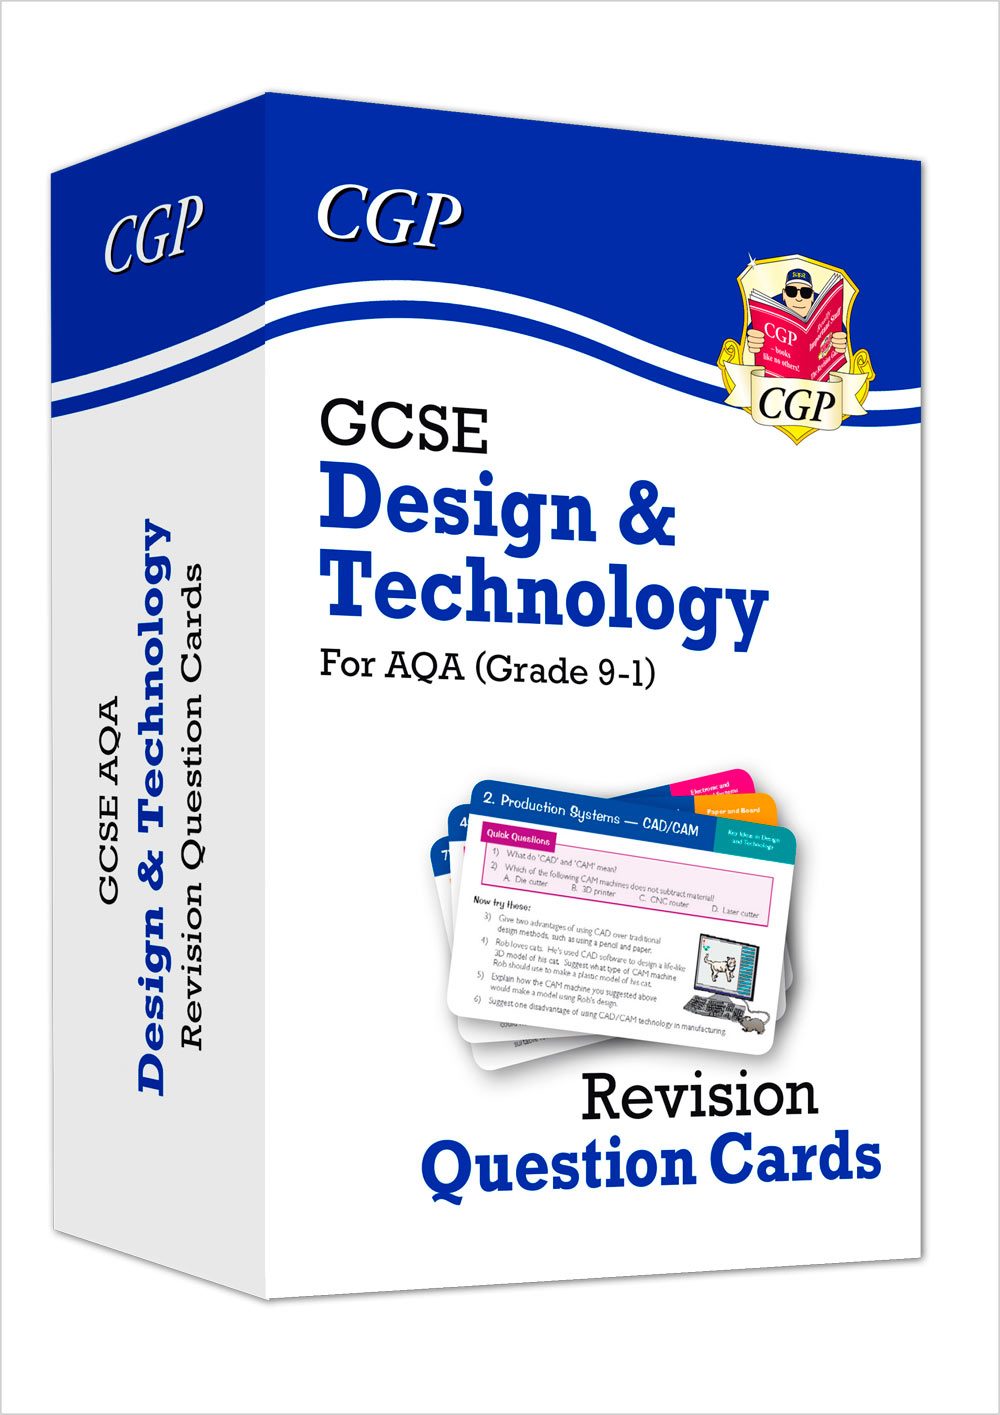 TAF41 - New Grade 9-1 GCSE Design & Technology AQA Revision Question Cards